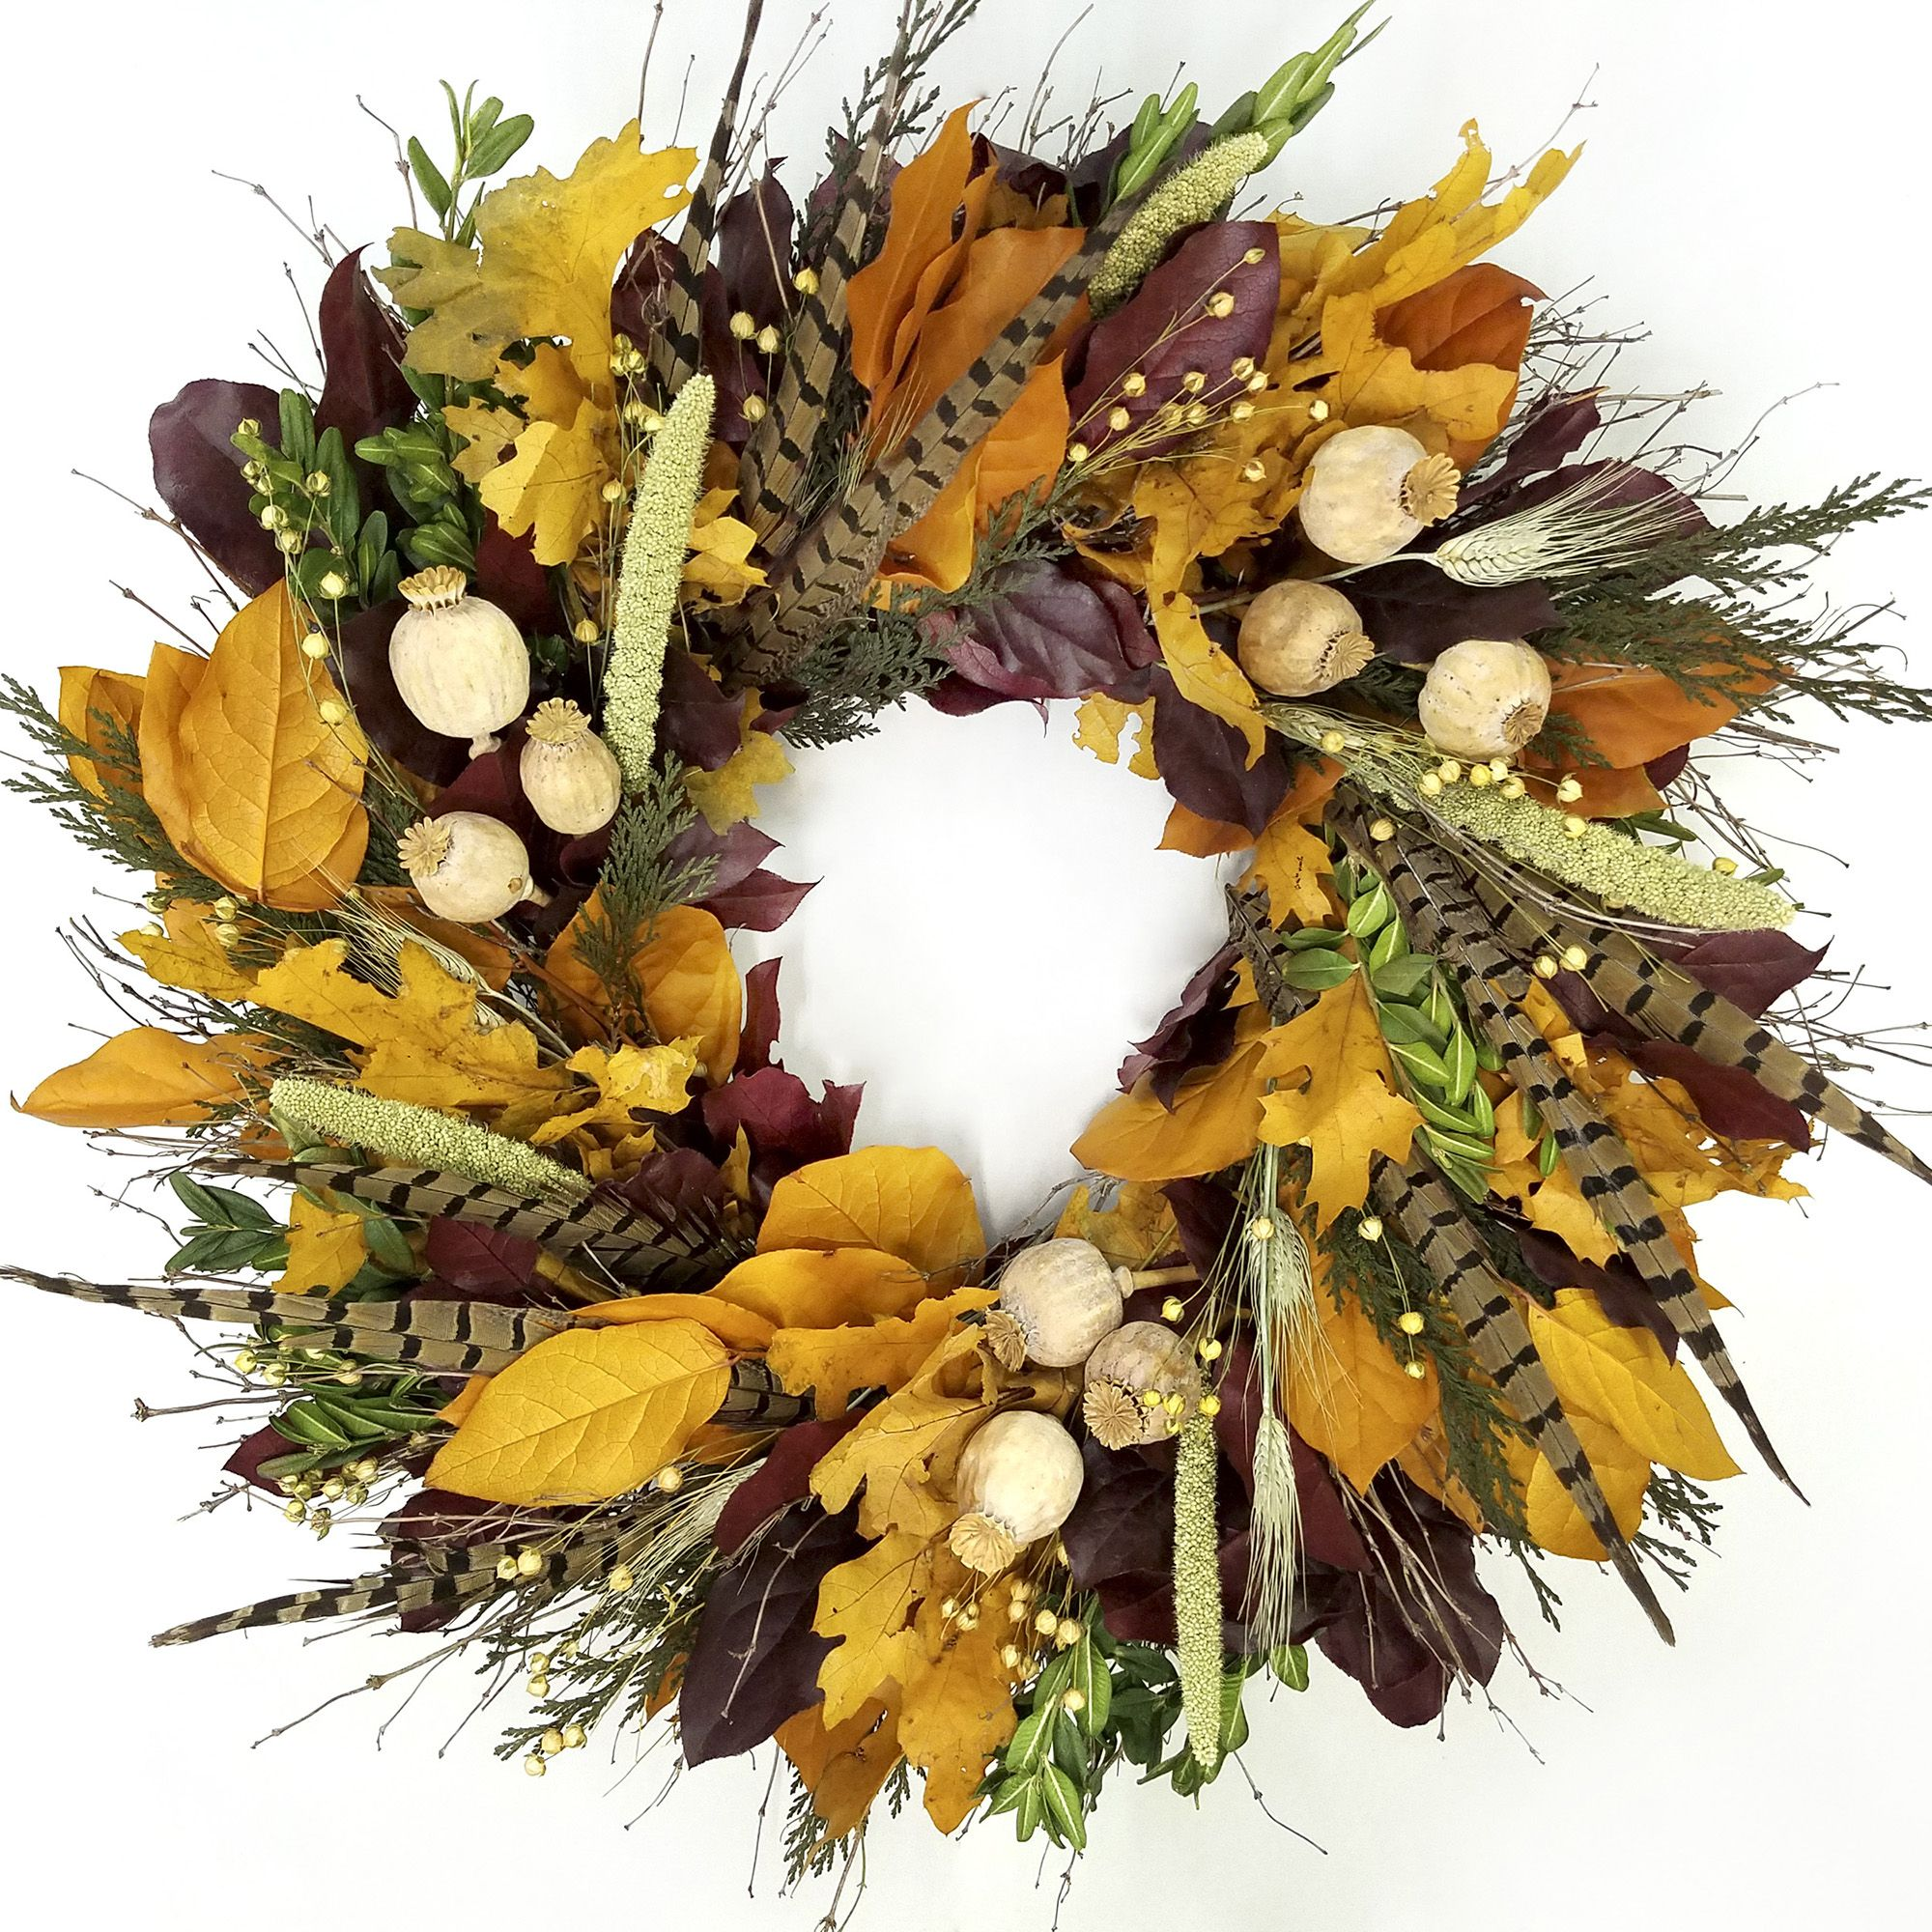 22 Best Fall Wreaths - Autumn Door Decorations